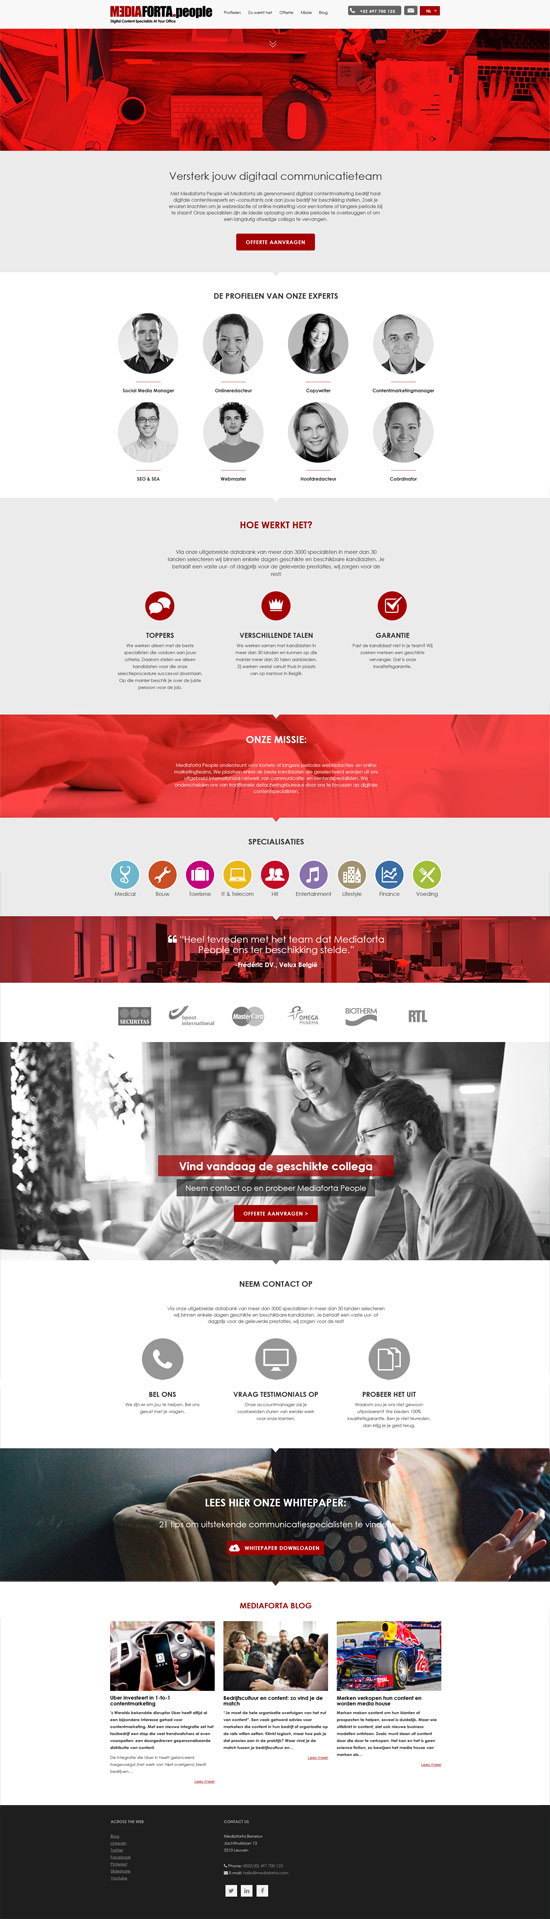 mediaforta-people-onepager